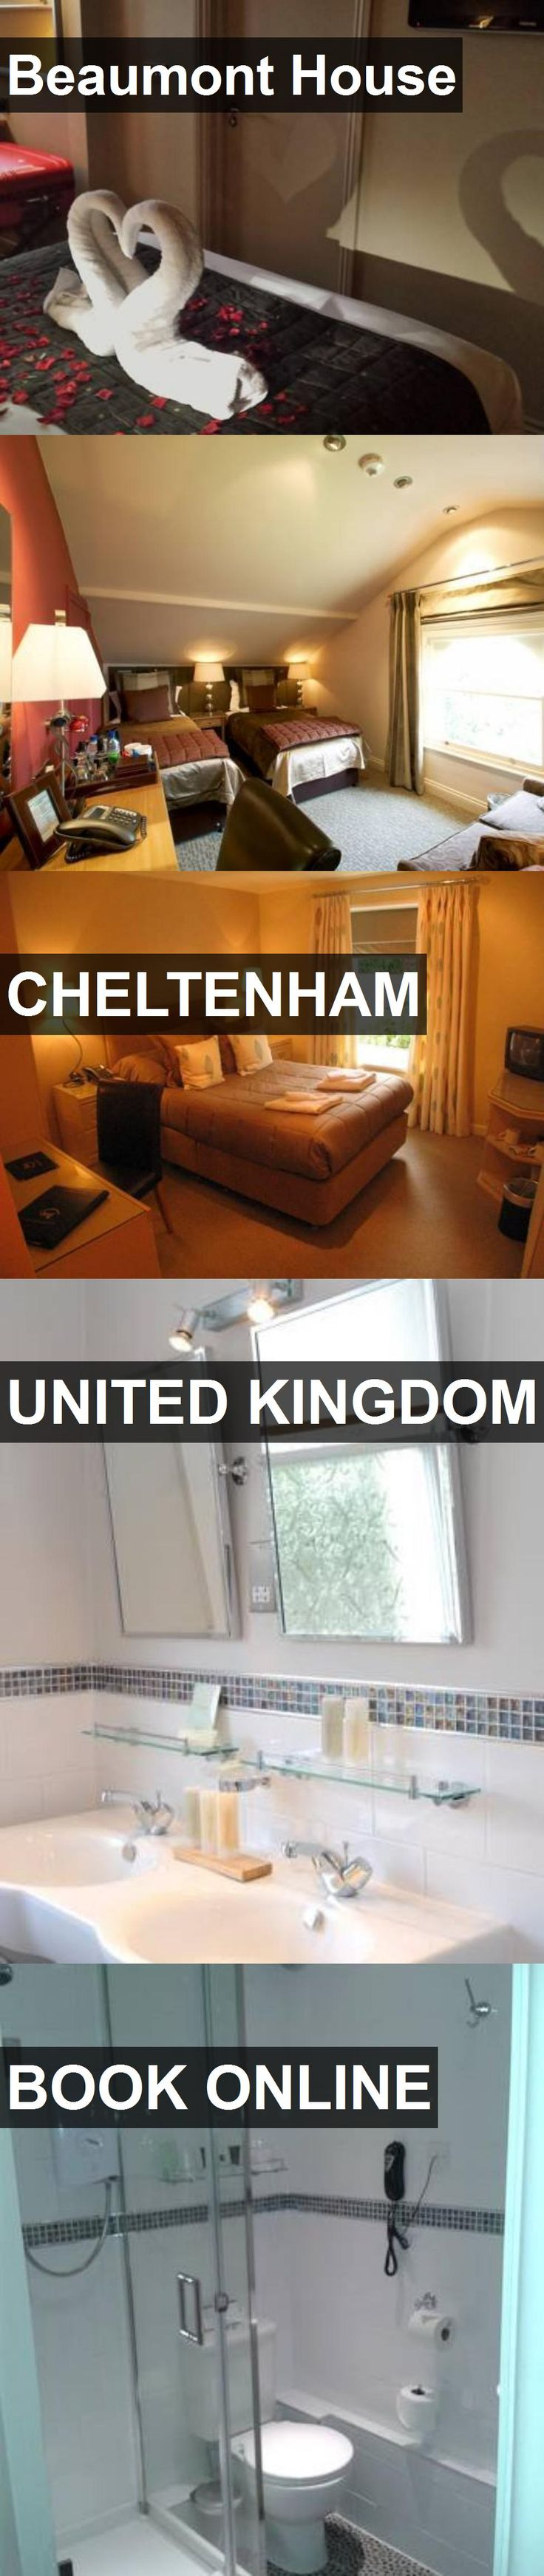 Hotel Beaumont House in Cheltenham, United Kingdom. For more information, photos, reviews and best prices please follow the link. #UnitedKingdom #Cheltenham #travel #vacation #hotel